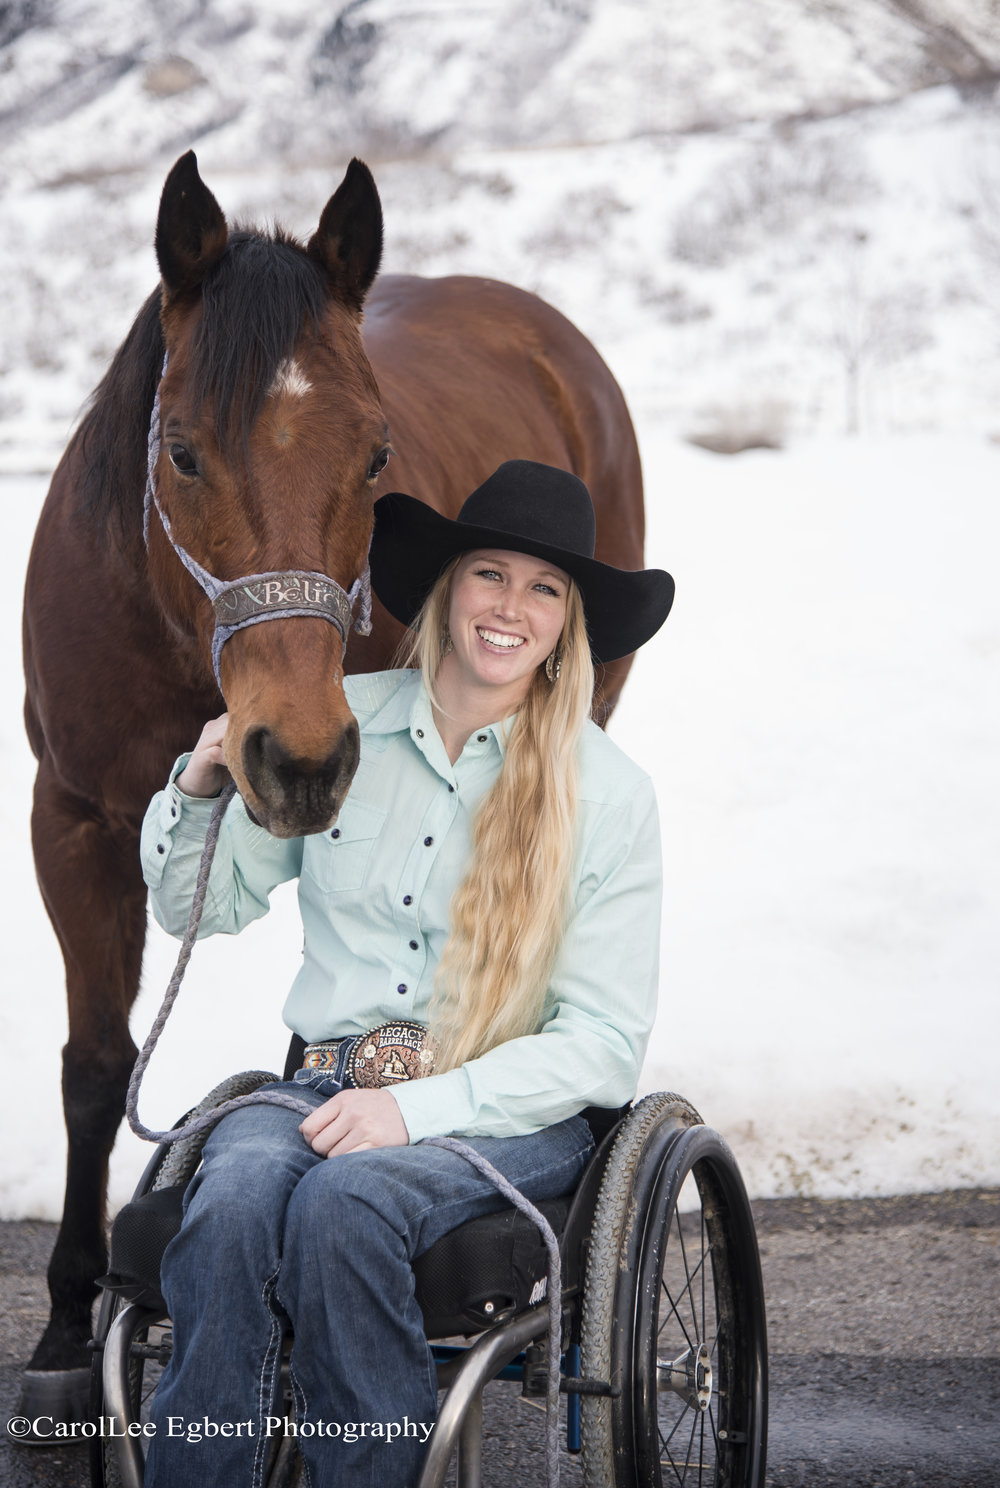 Competitive rodeo star, Amberley Snyder, will share her story of triumph over tragedy